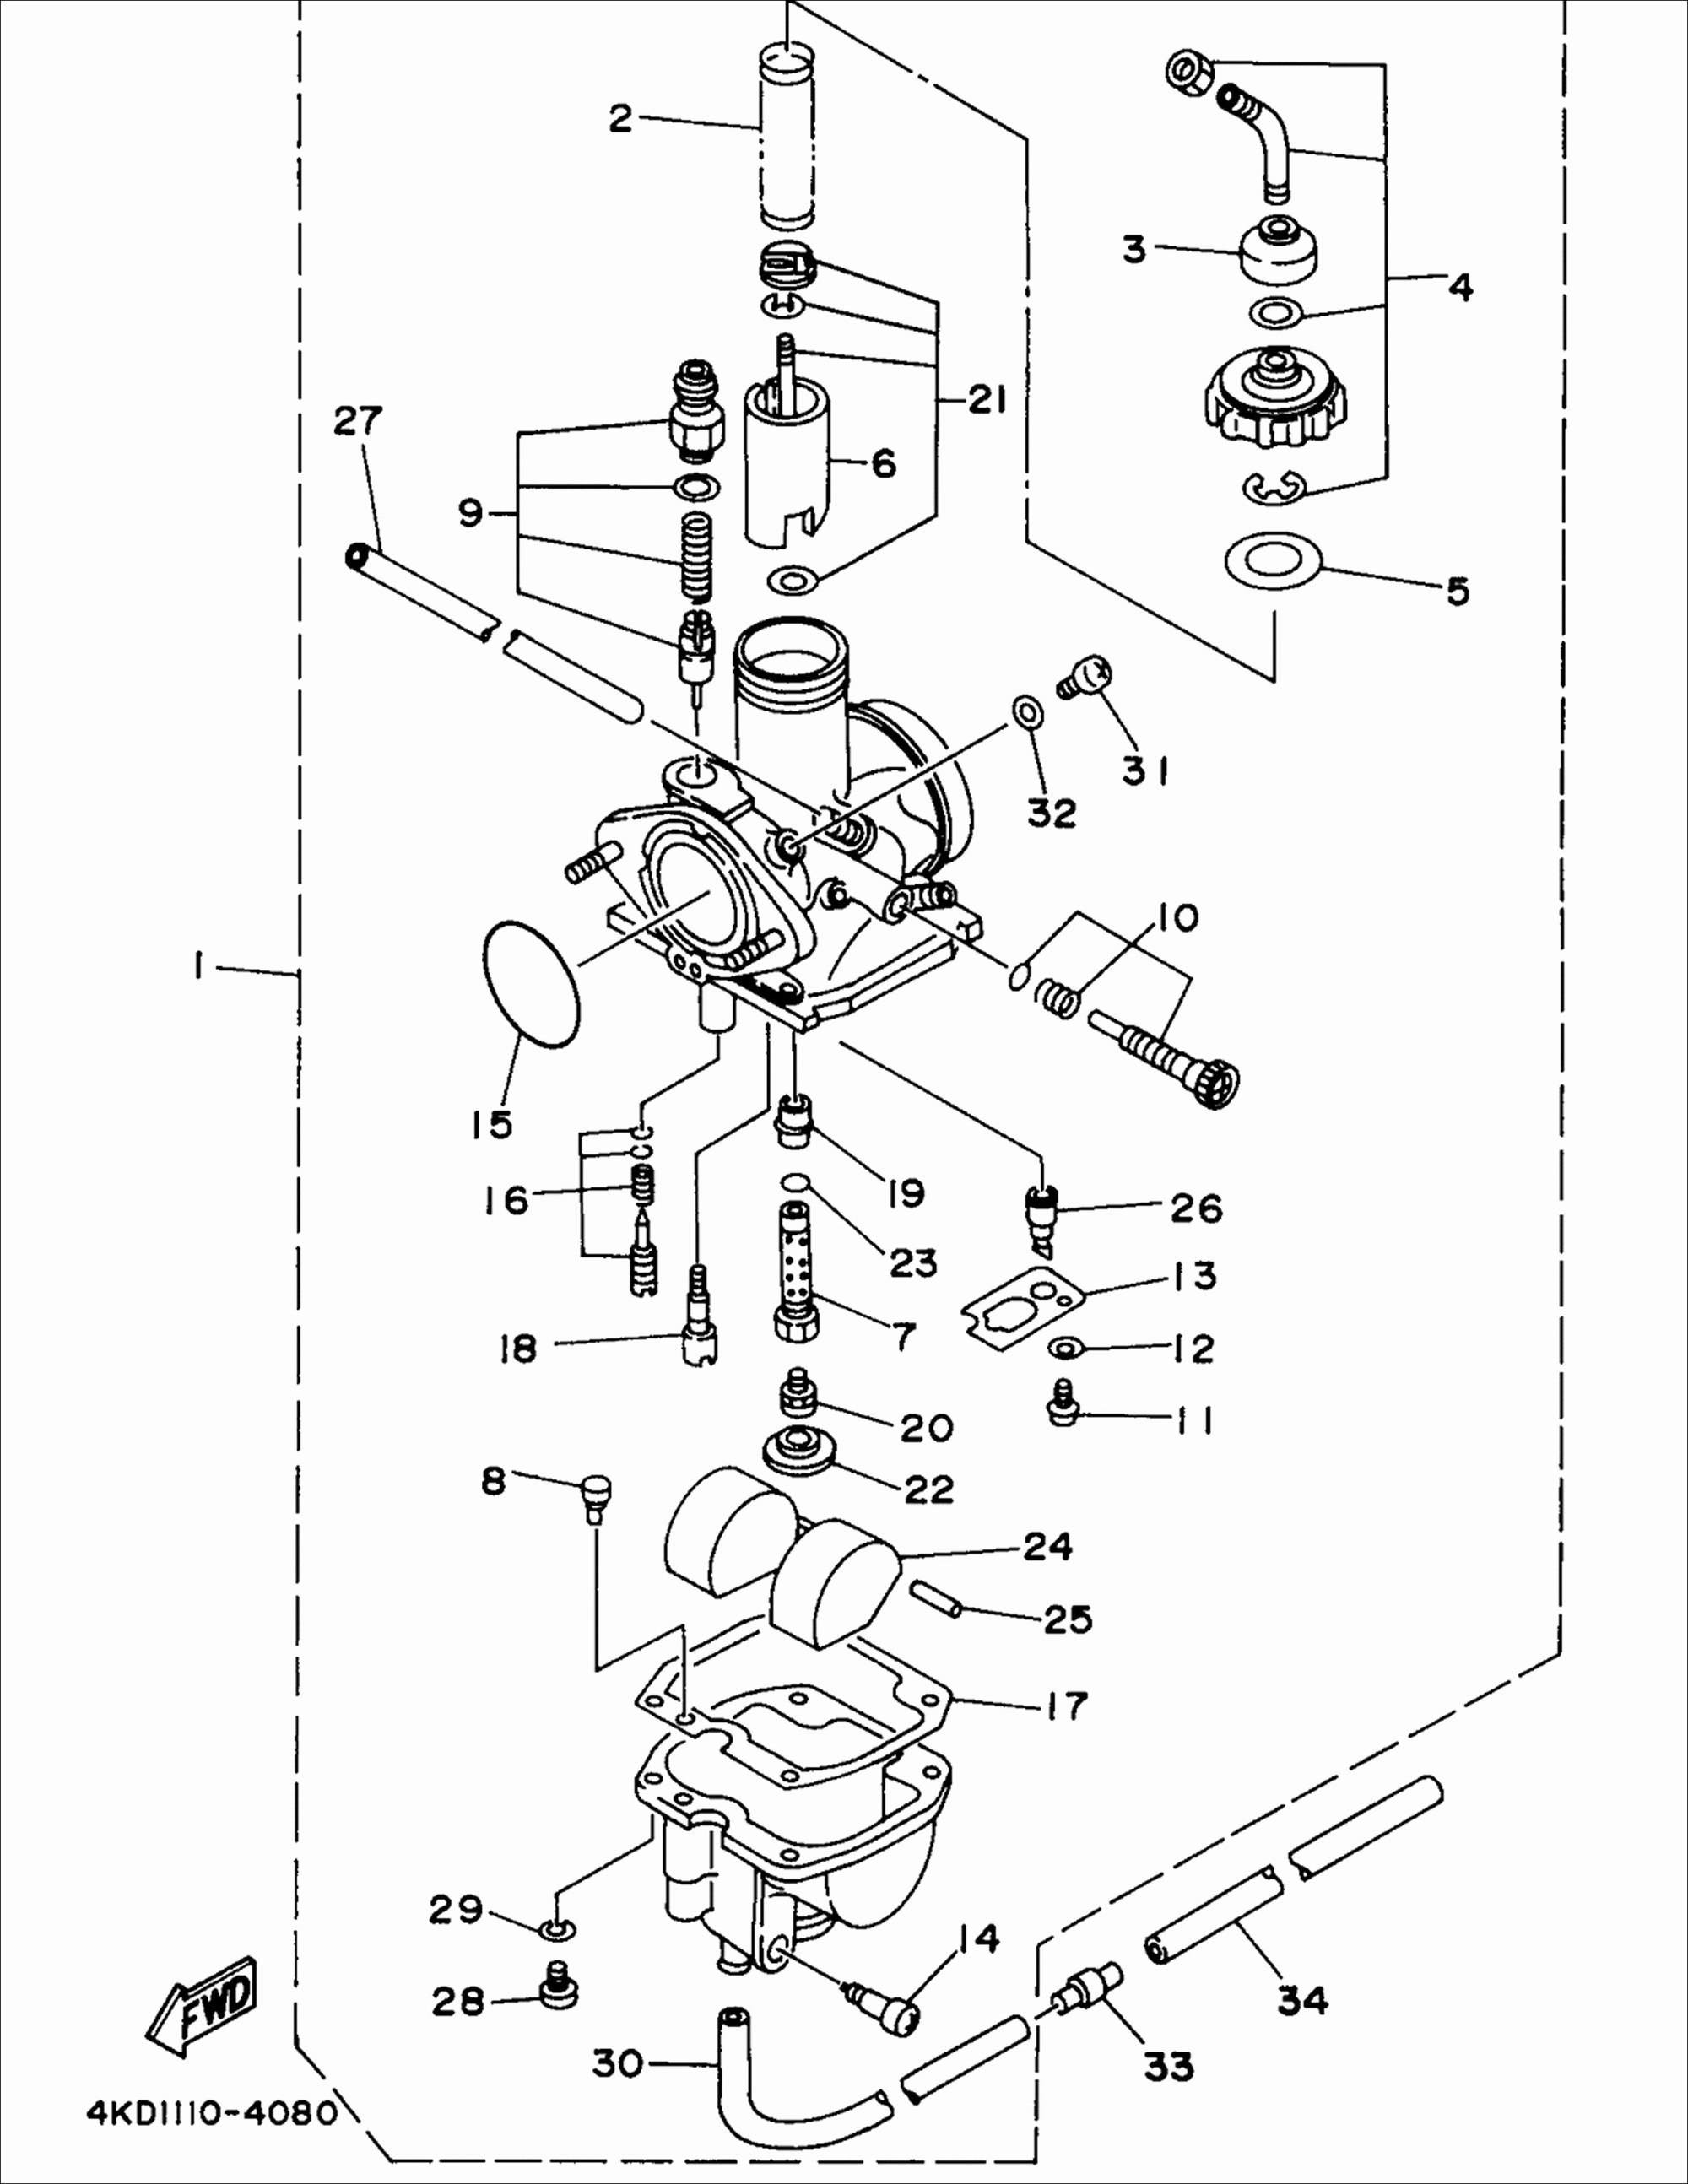 hight resolution of 1995 pontiac bonneville fuse panel diagram worksheet and wiring rh bookinc co 2002 pontiac sunfire fuse